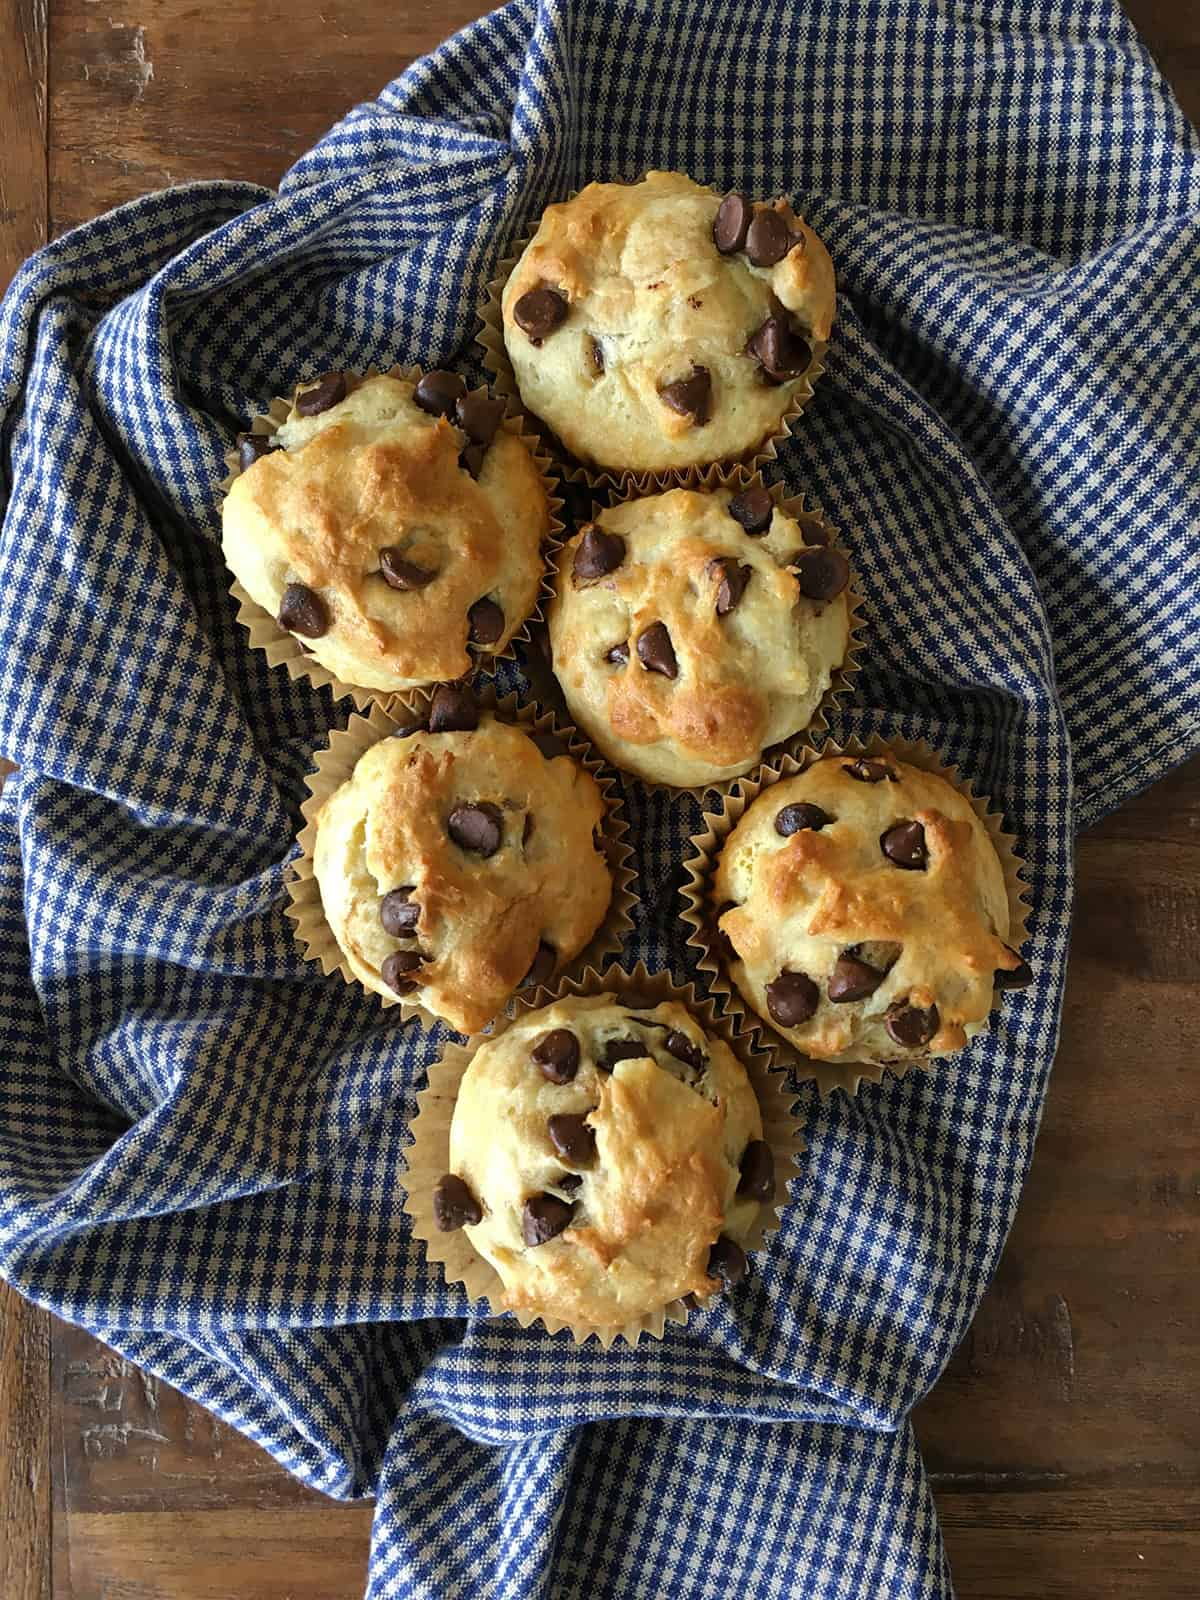 Chocolate chip muffins on a blue and tan plaid napkin atop a brown wood table